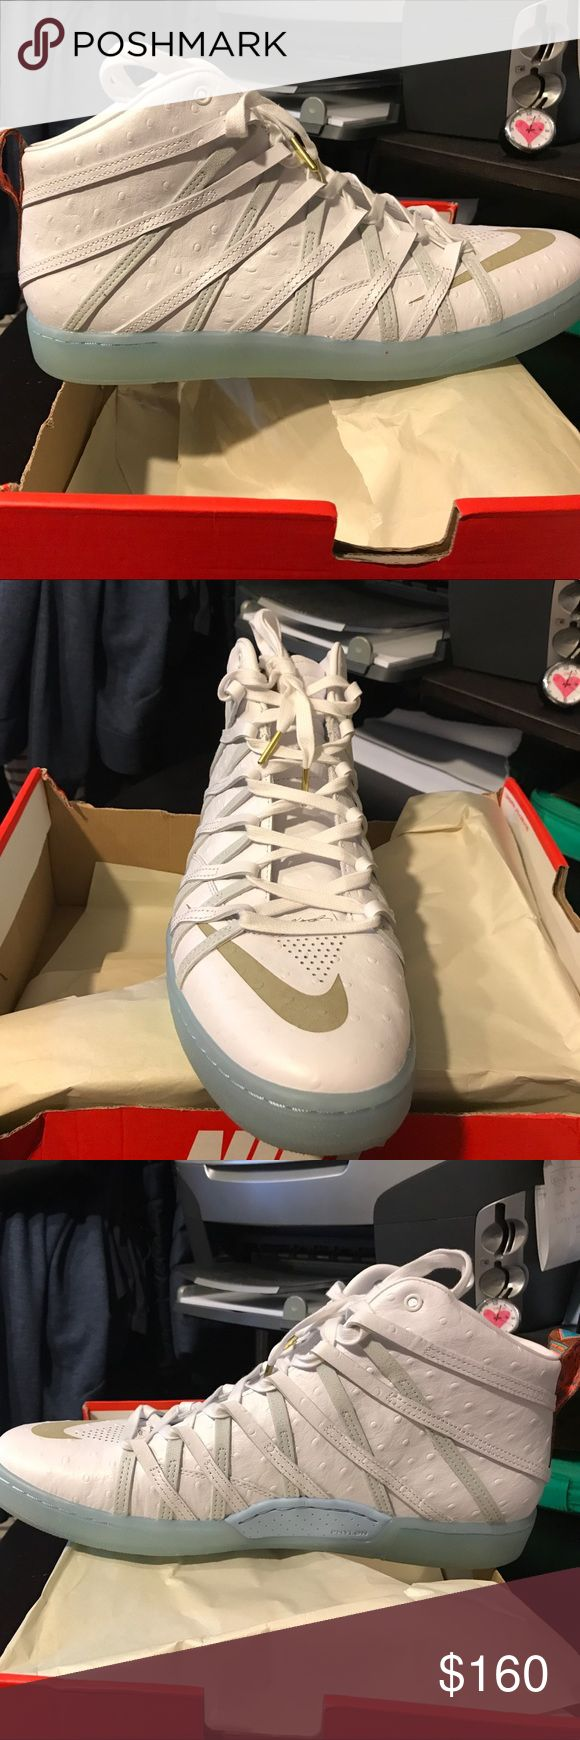 Nike Kevin Durant Sneakers New in box, but box has no lid. Nike Shoes Sneakers